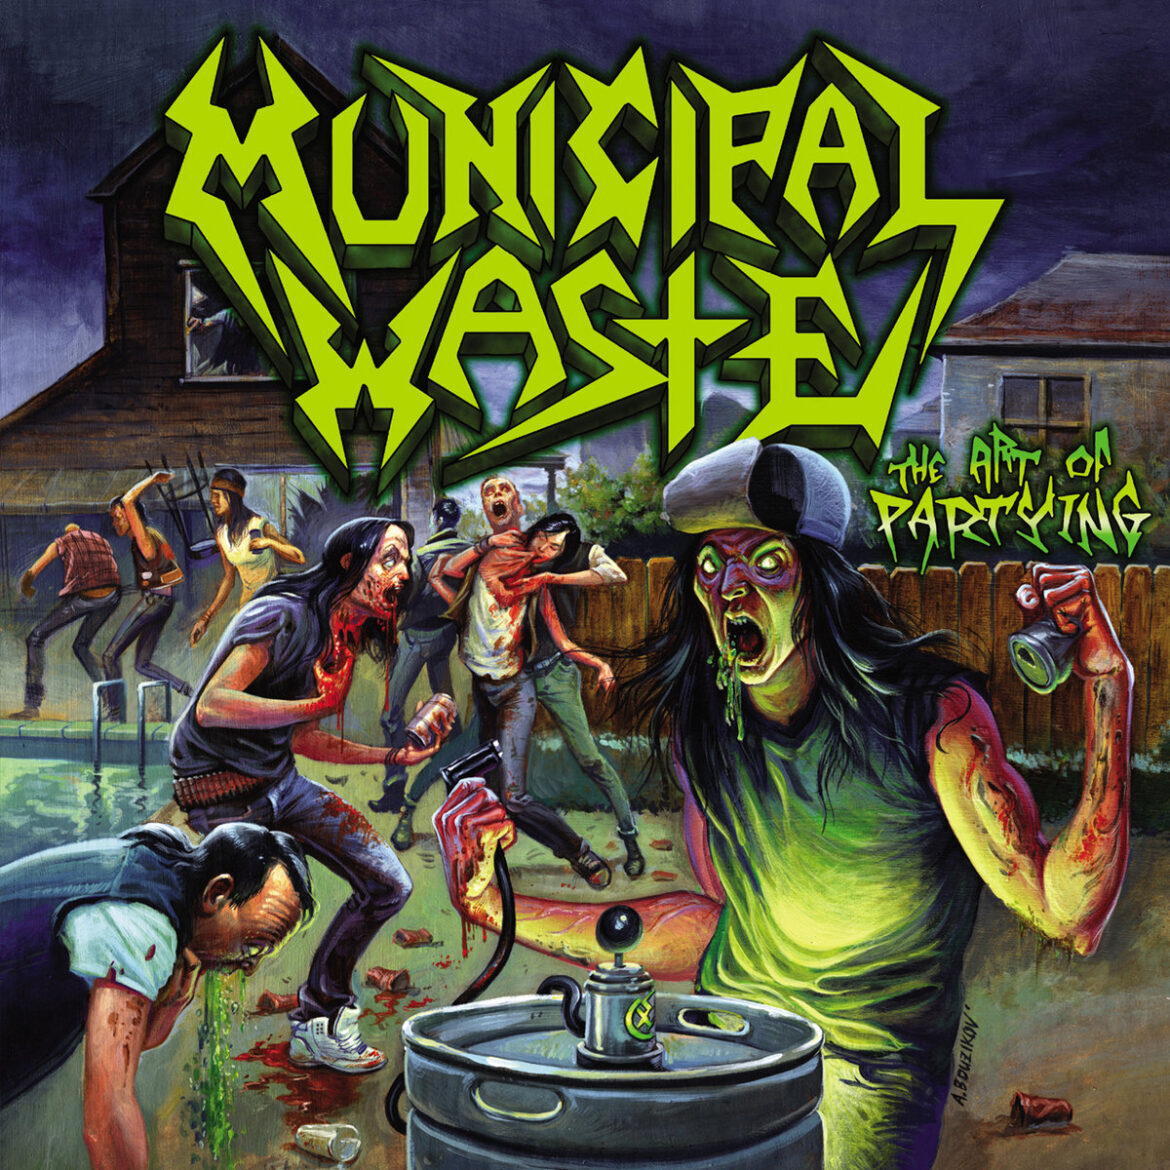 An Interview With Ryan Waste of Municipal Waste!